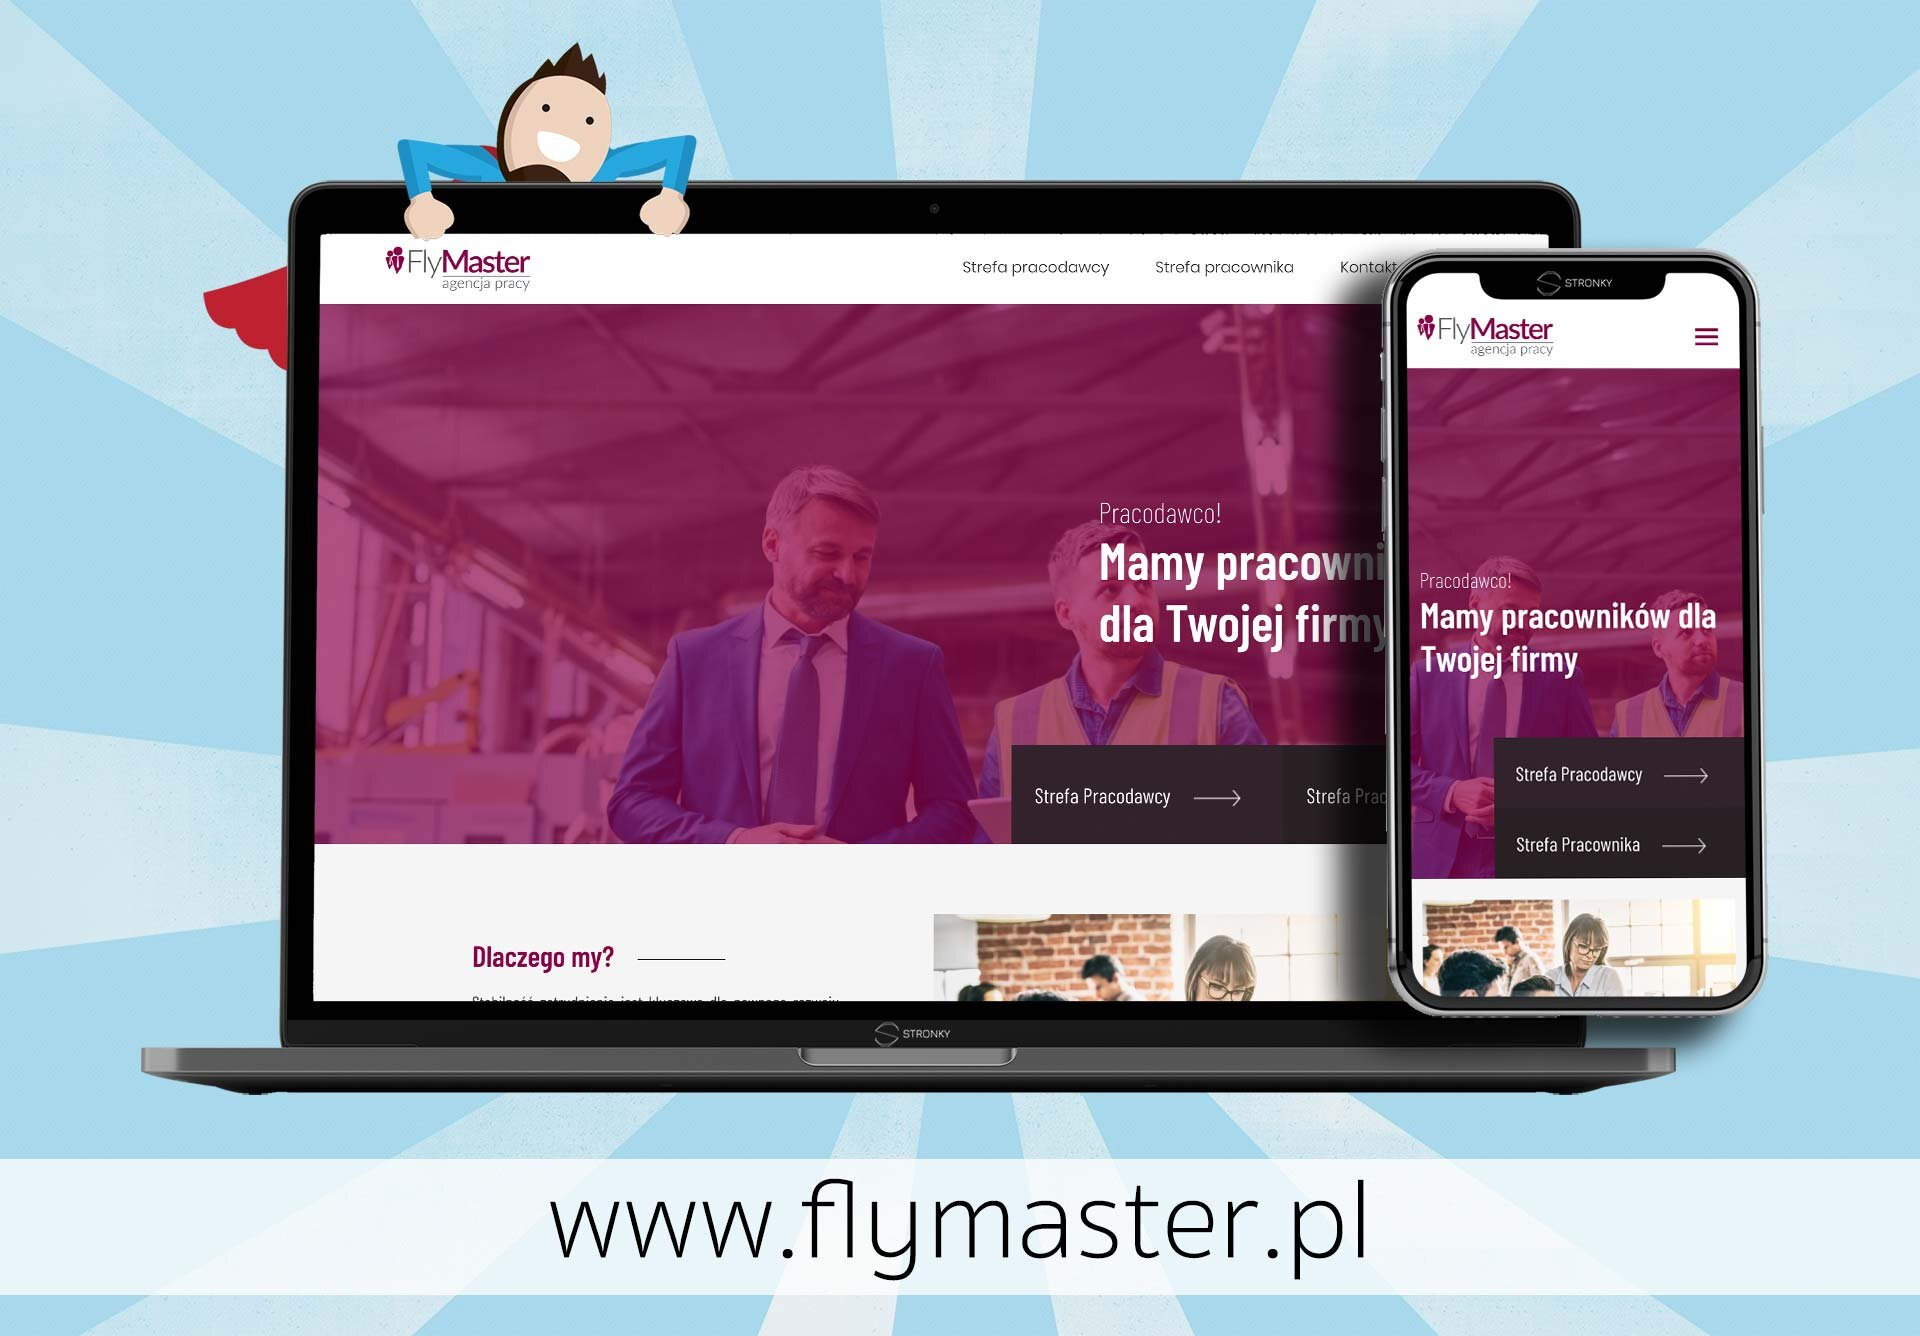 Fly Master - screen